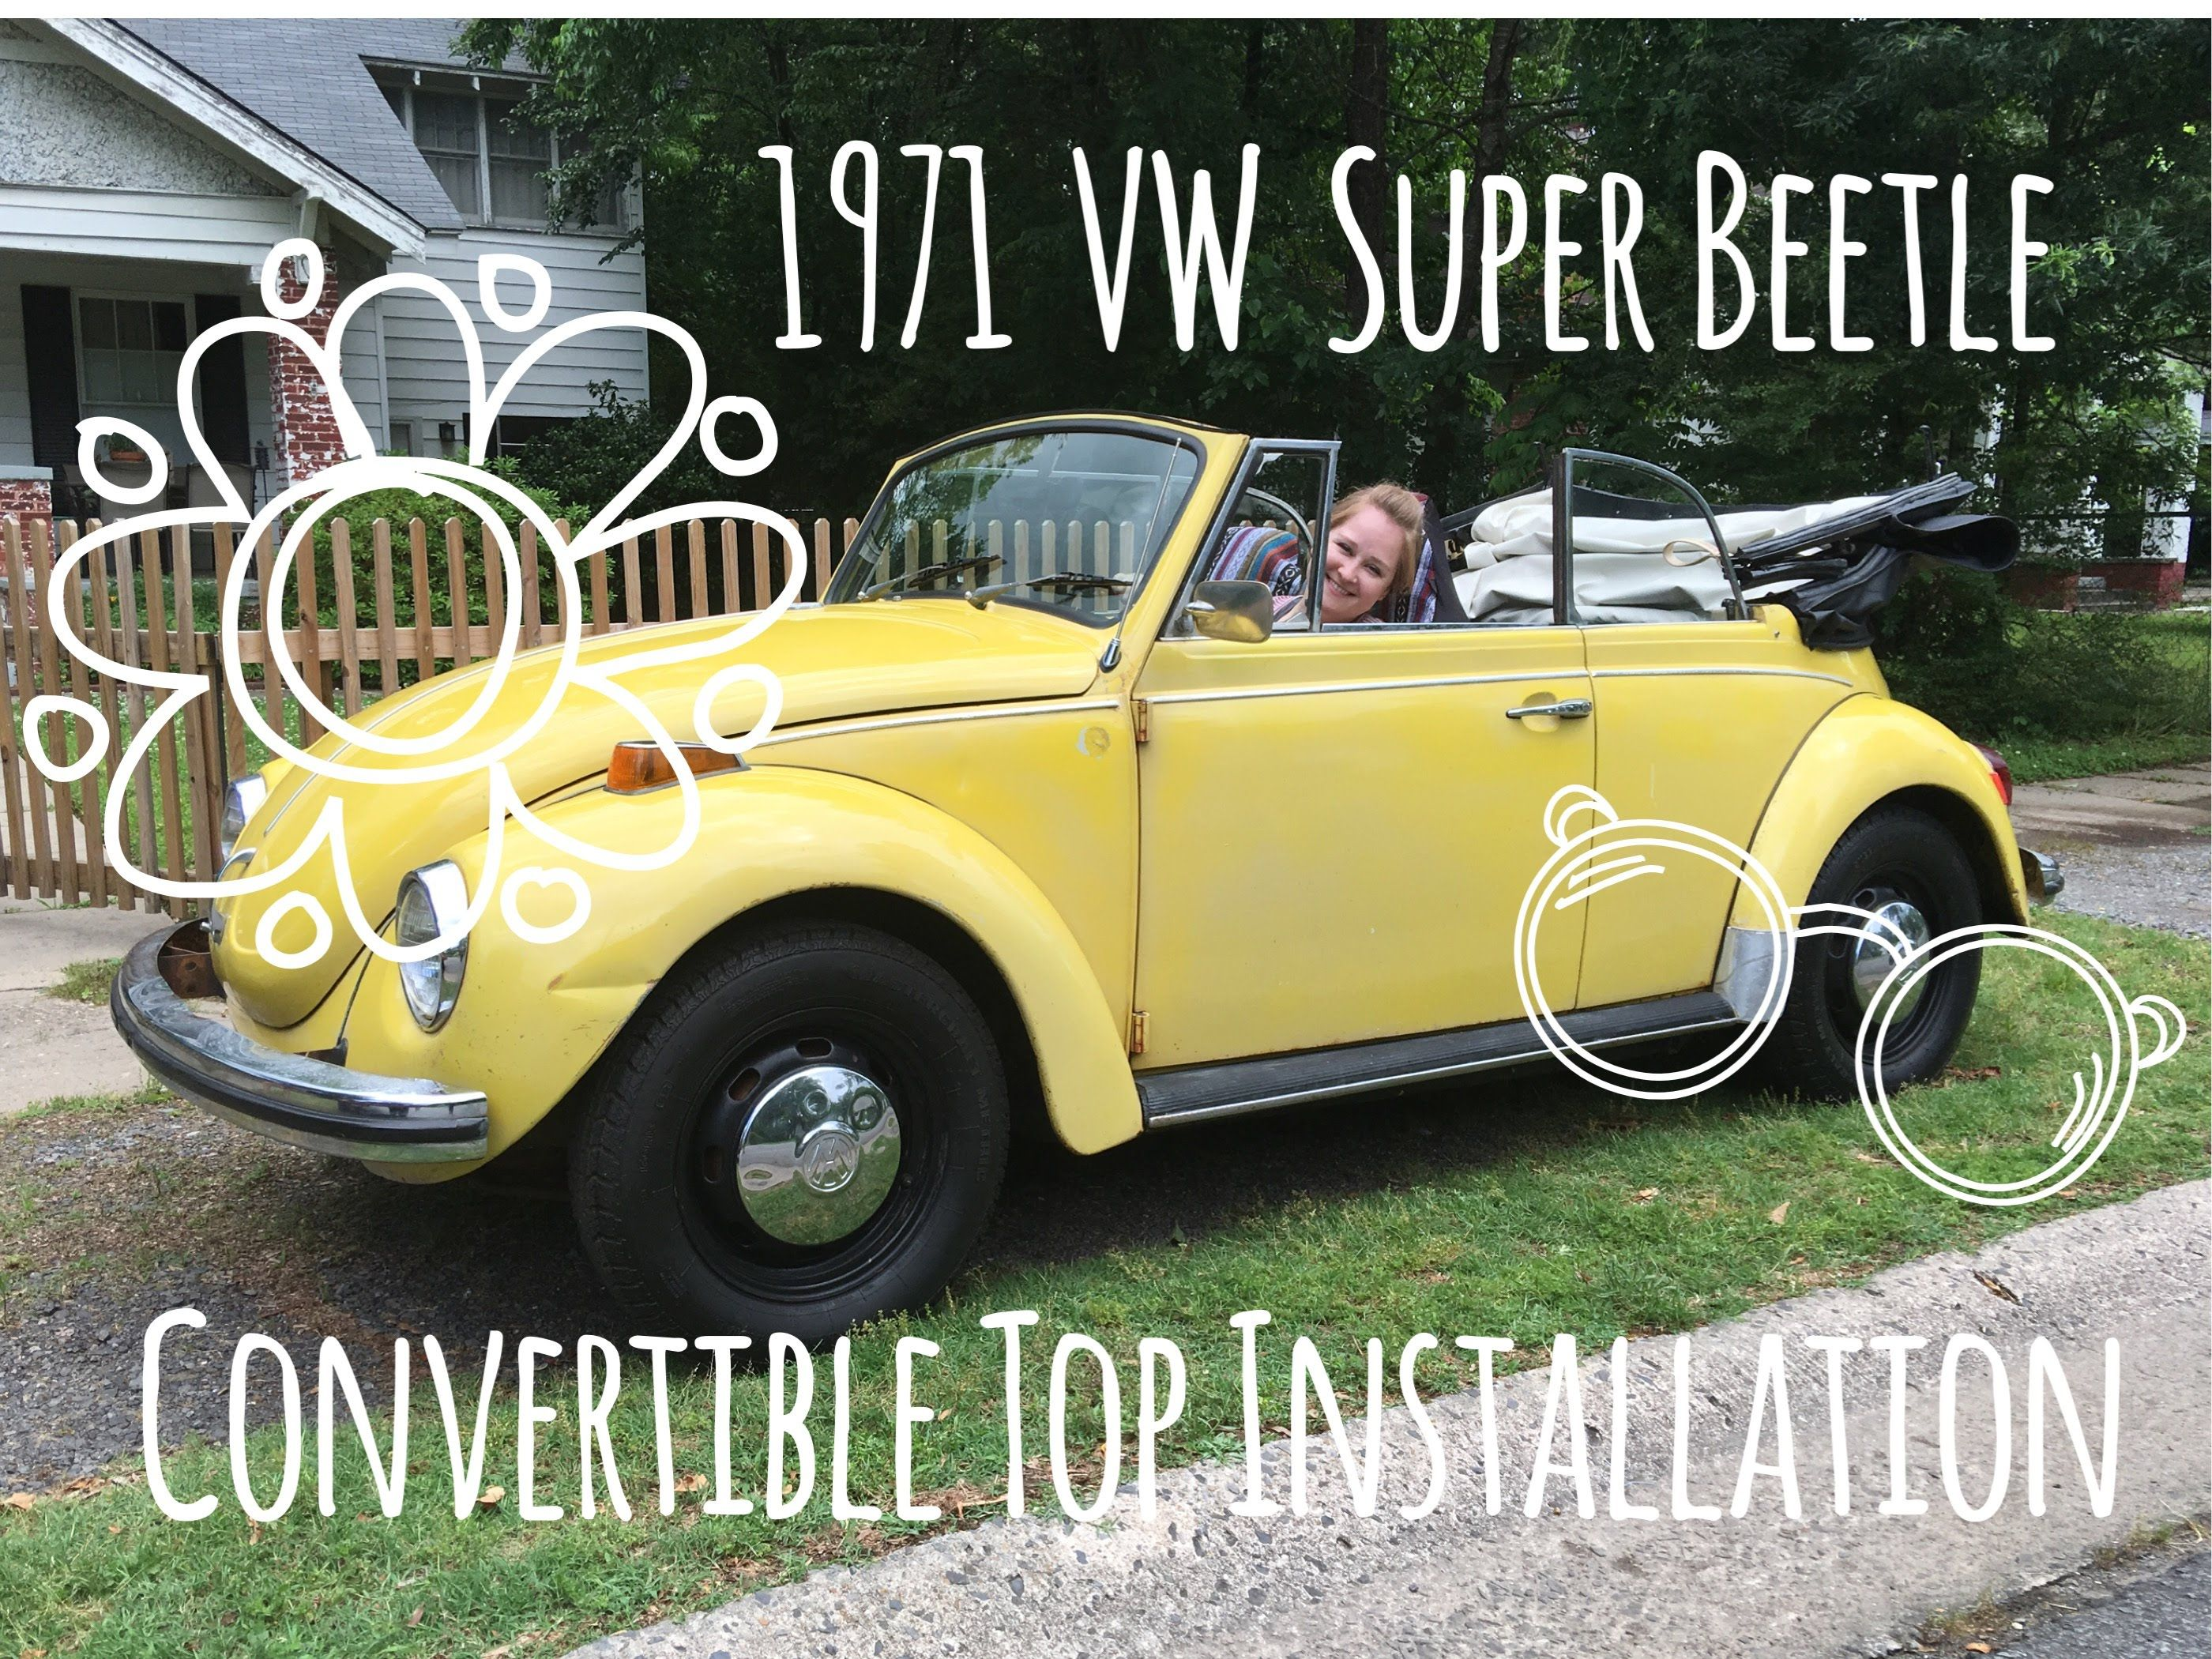 Convertible Installation 1971 Vw Super Beetle Marla Plain Small